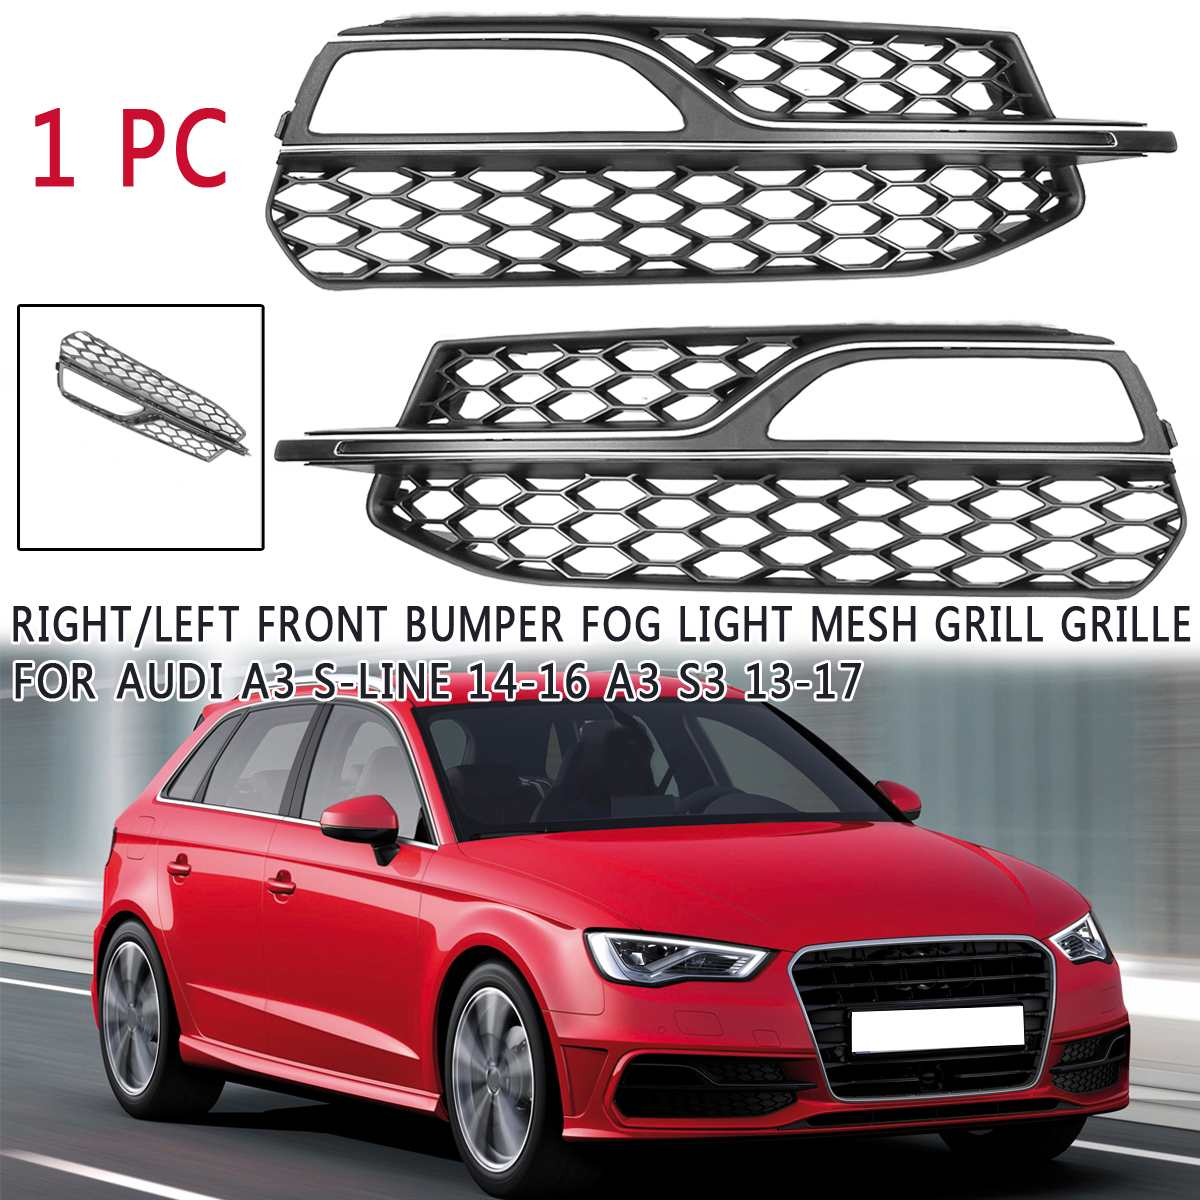 ABS Front Bumper Fog Light Grilles <font><b>Grill</b></font> For <font><b>Audi</b></font> A3 <font><b>S3</b></font> 2013 2014 2015 2016 2017 for A3 S-Line 2014 2015 2016 Car-styling image